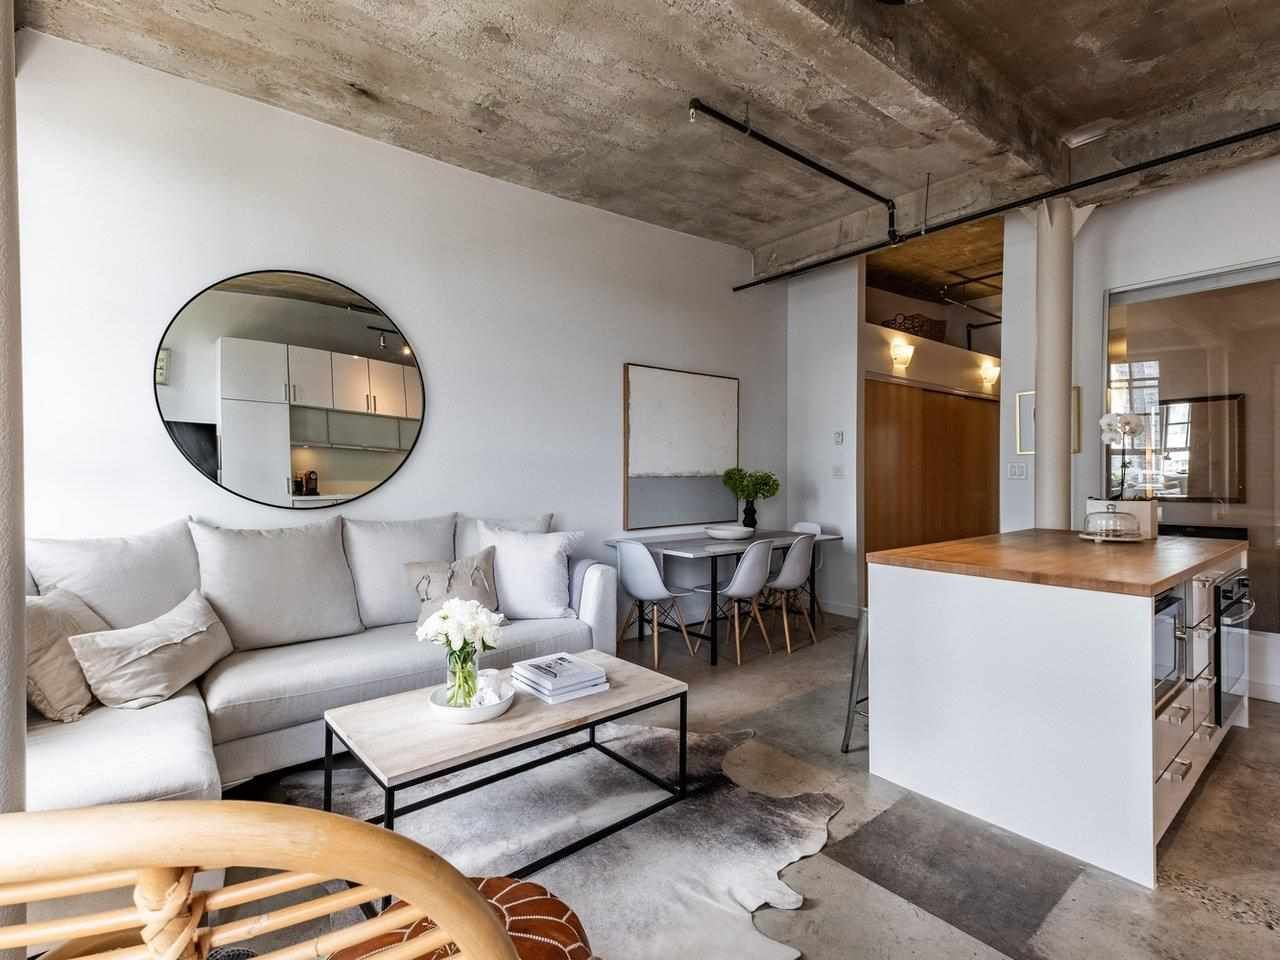 Beautifully preserved exposed bricks throughout the unit, featuring 10' high ceilings, dbl over-height sash wood windows, exposed concrete beams & concrete floors.